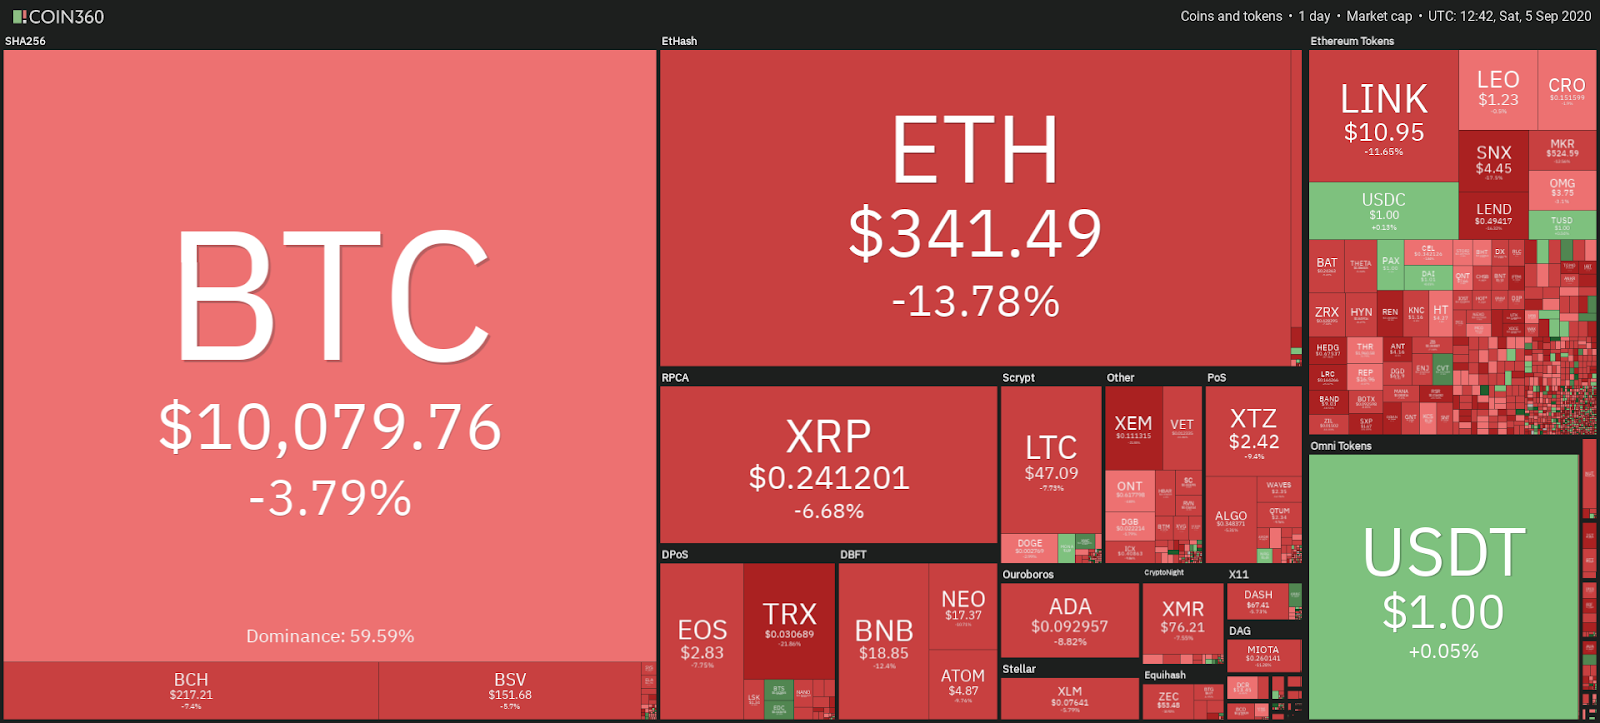 Crypto market daily performance snapshot